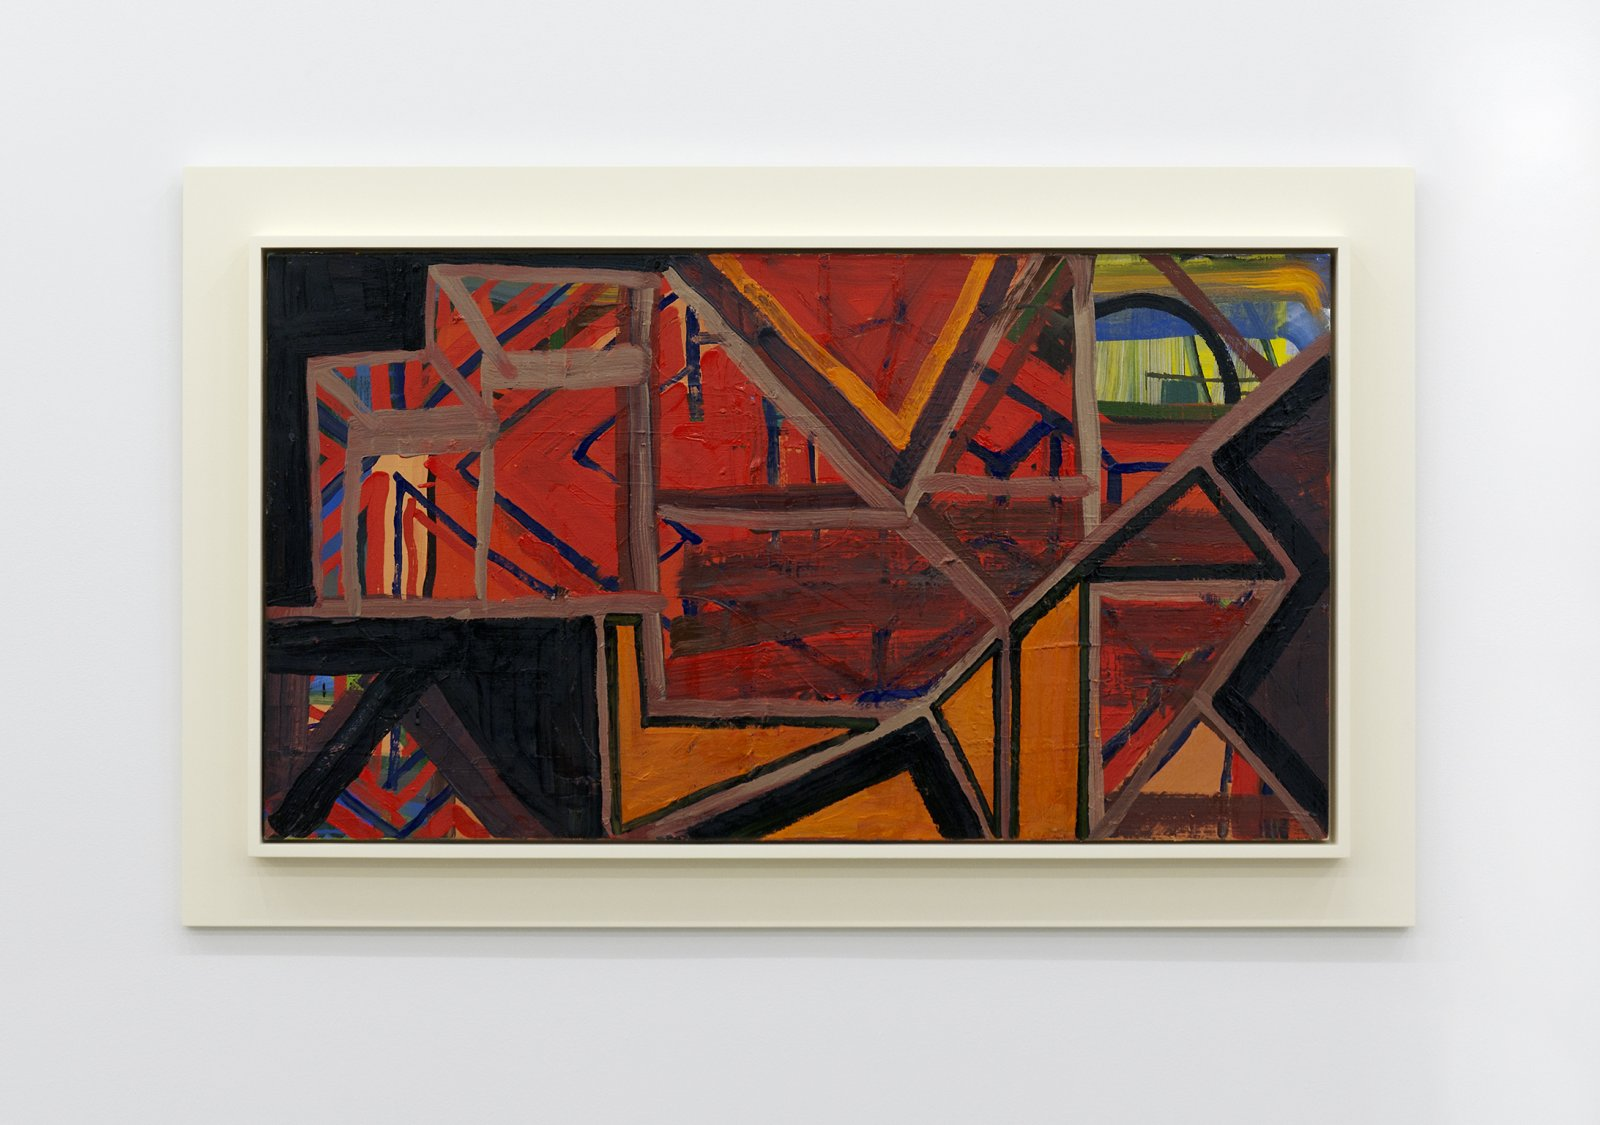 Damian Moppett, Horizontal Abstraction, 2010, oil on canvas and wood frame, 32 x 52 in. (80 x 132 cm) by Damian Moppett